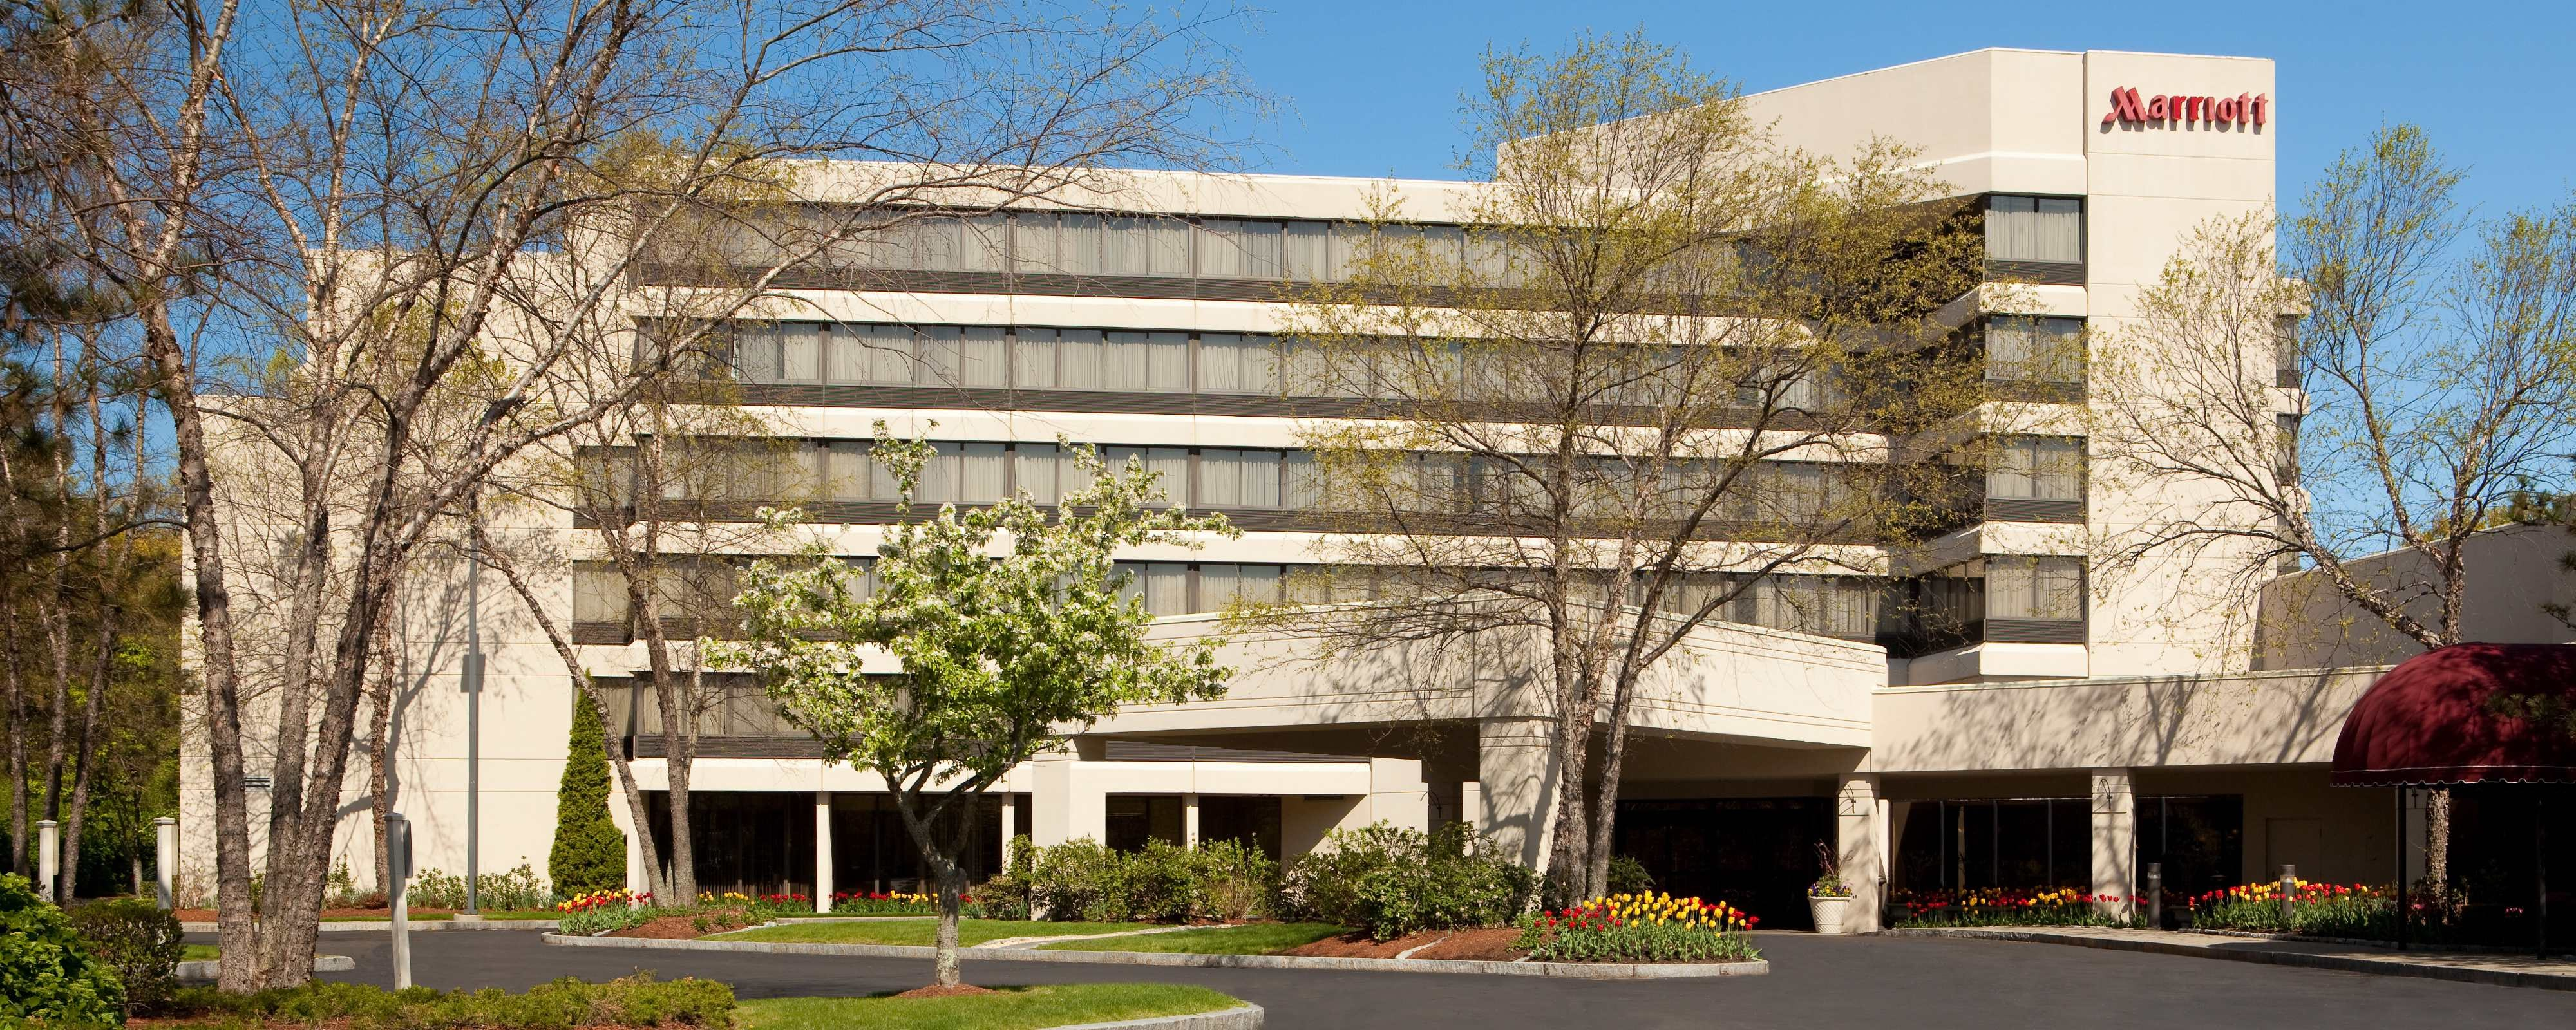 Hotels Close to Salem, Massachusetts | Boston Marriott Peabody